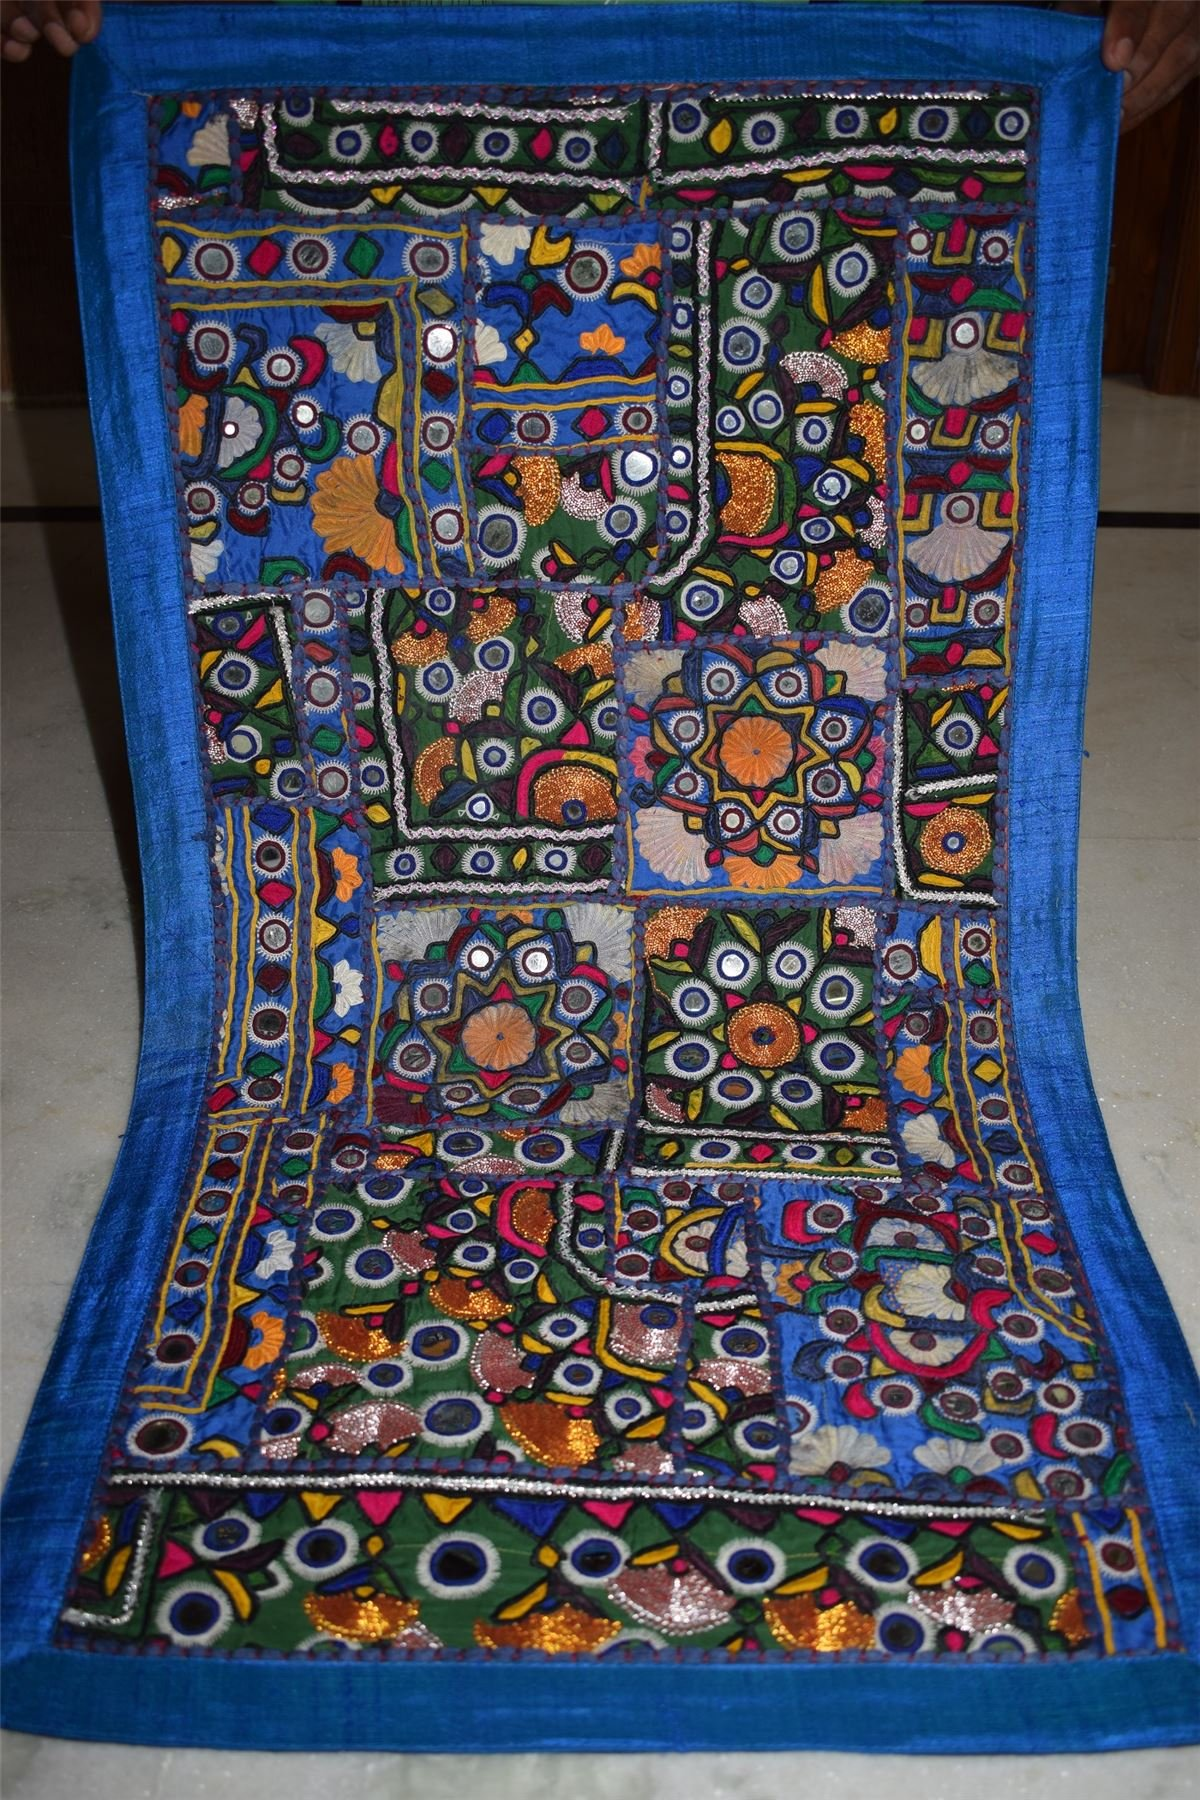 INDIA HANDMADE PATCHWORK WALL HANGING EMBROIDERED VINTAGE TAPESTRY 70